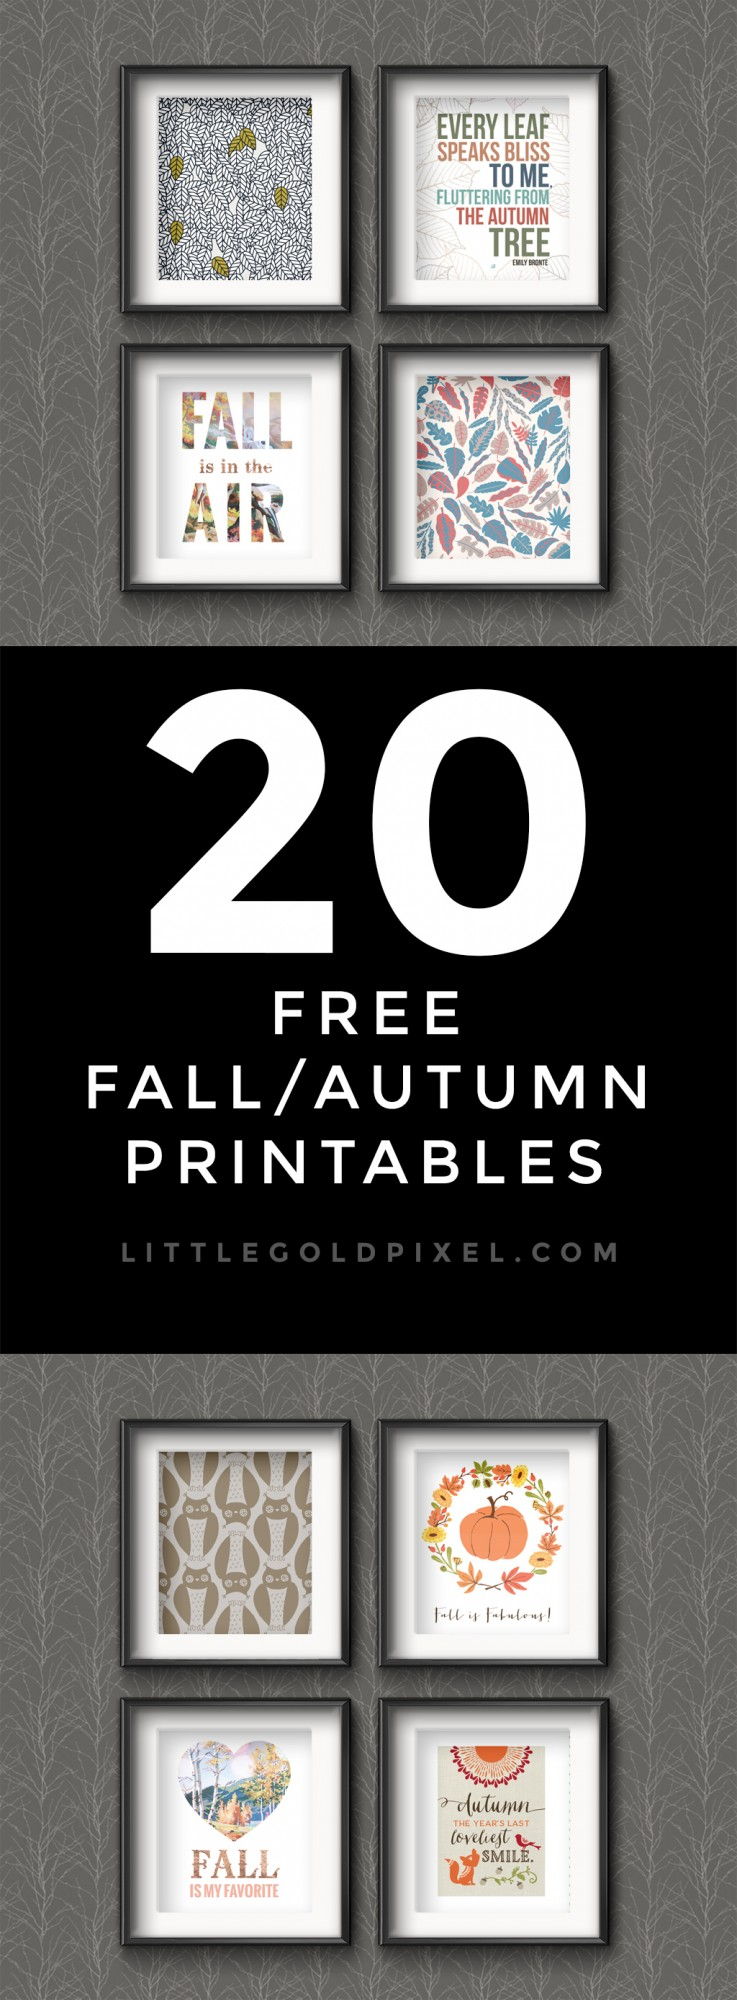 20 Awesome Free Fall Printables • Little Gold Pixel • In which I round up 20 Awesome Free Fall Printables that you can use to update your seasonal decor and gallery walls.